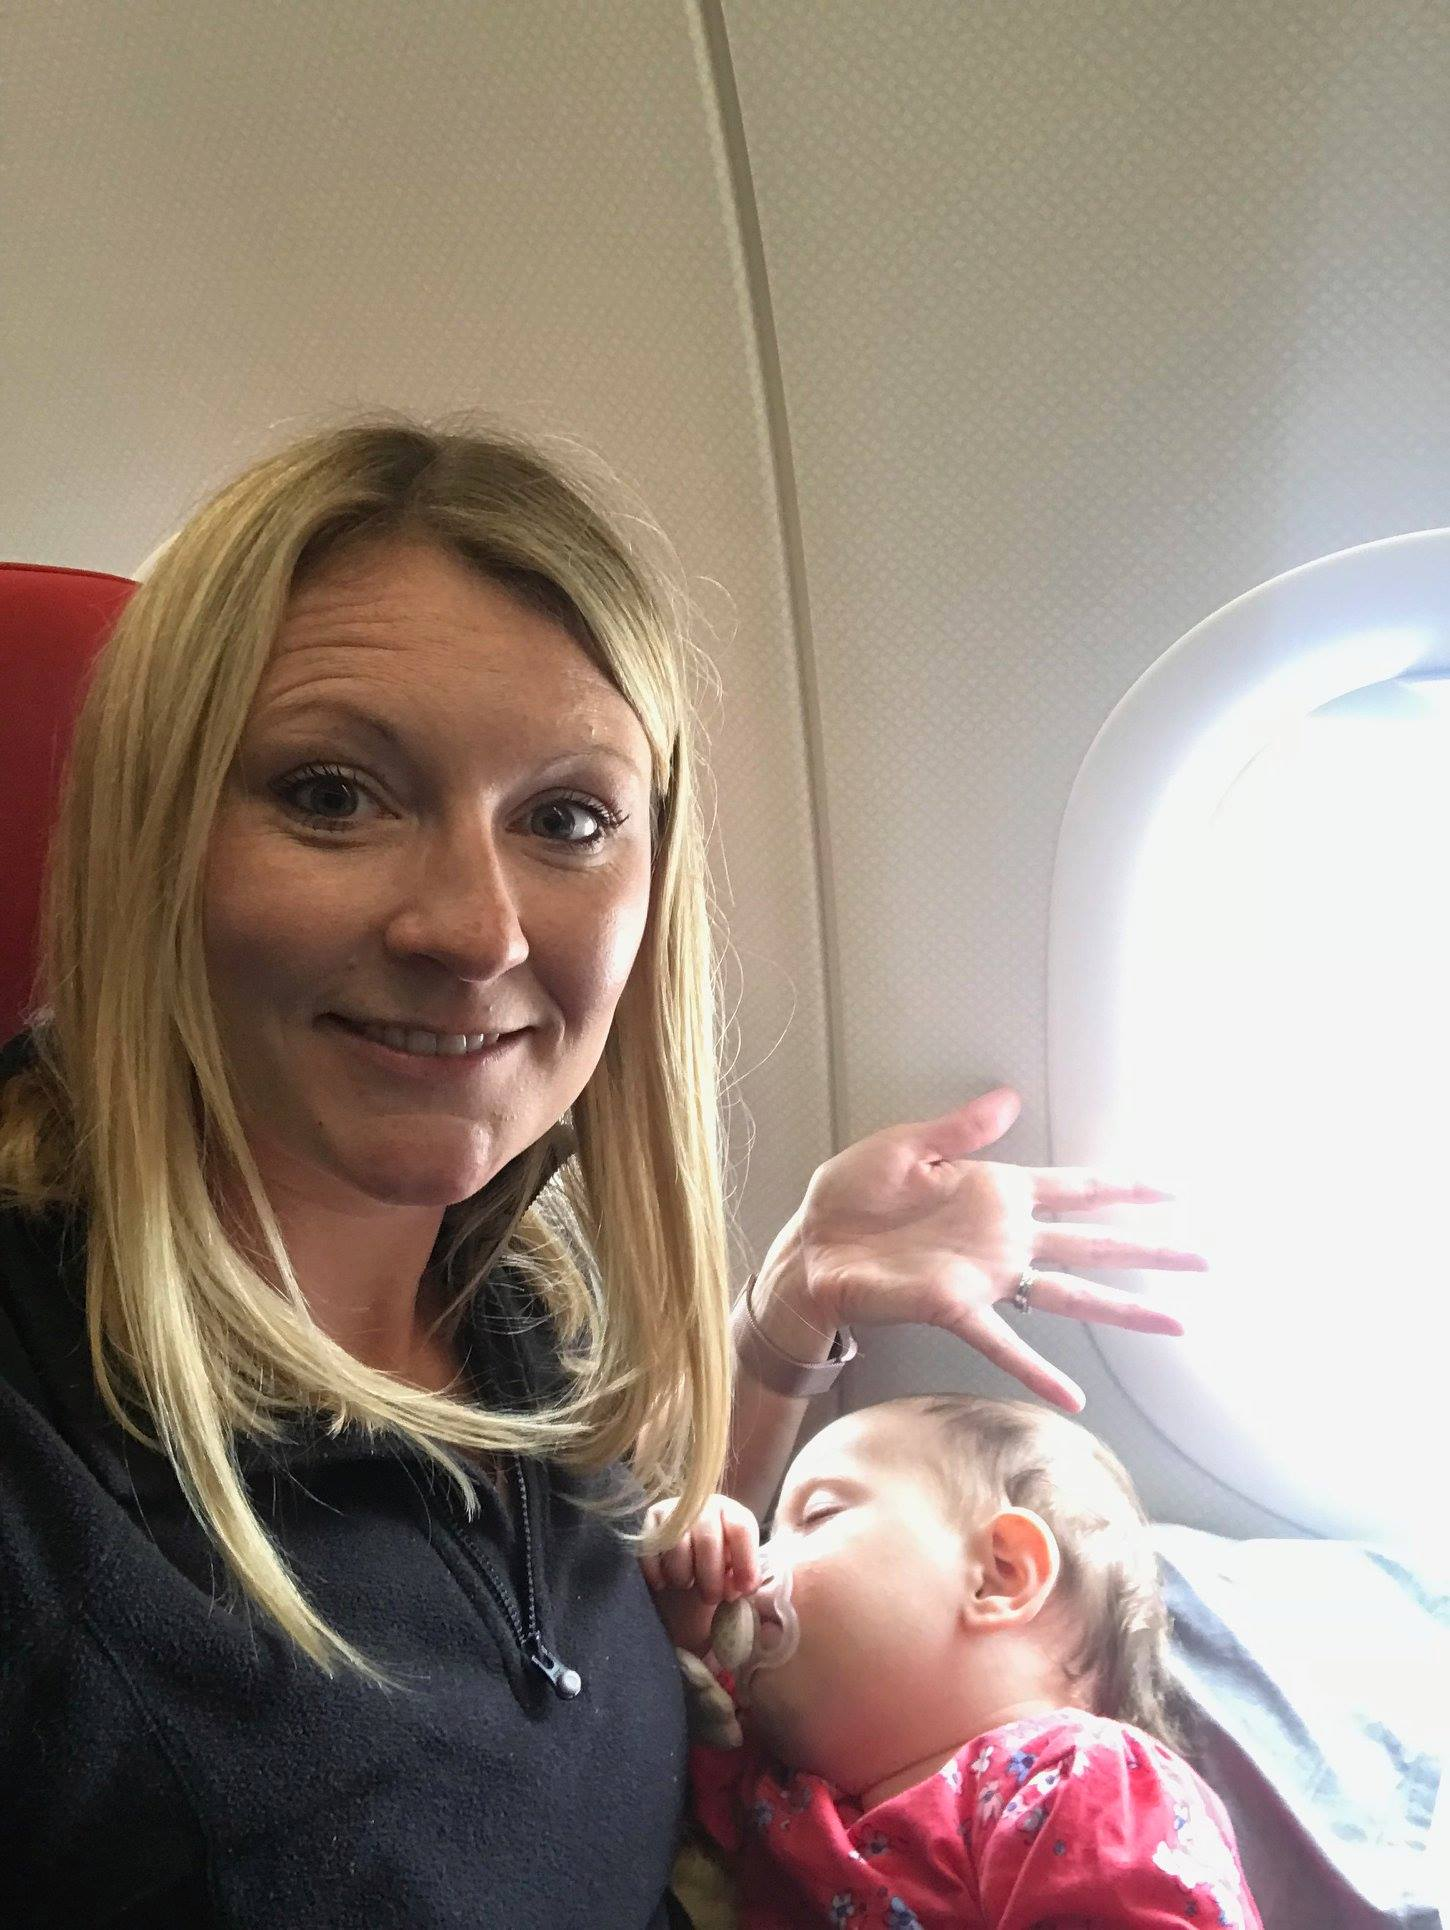 baby sleeping on mum in a airplane